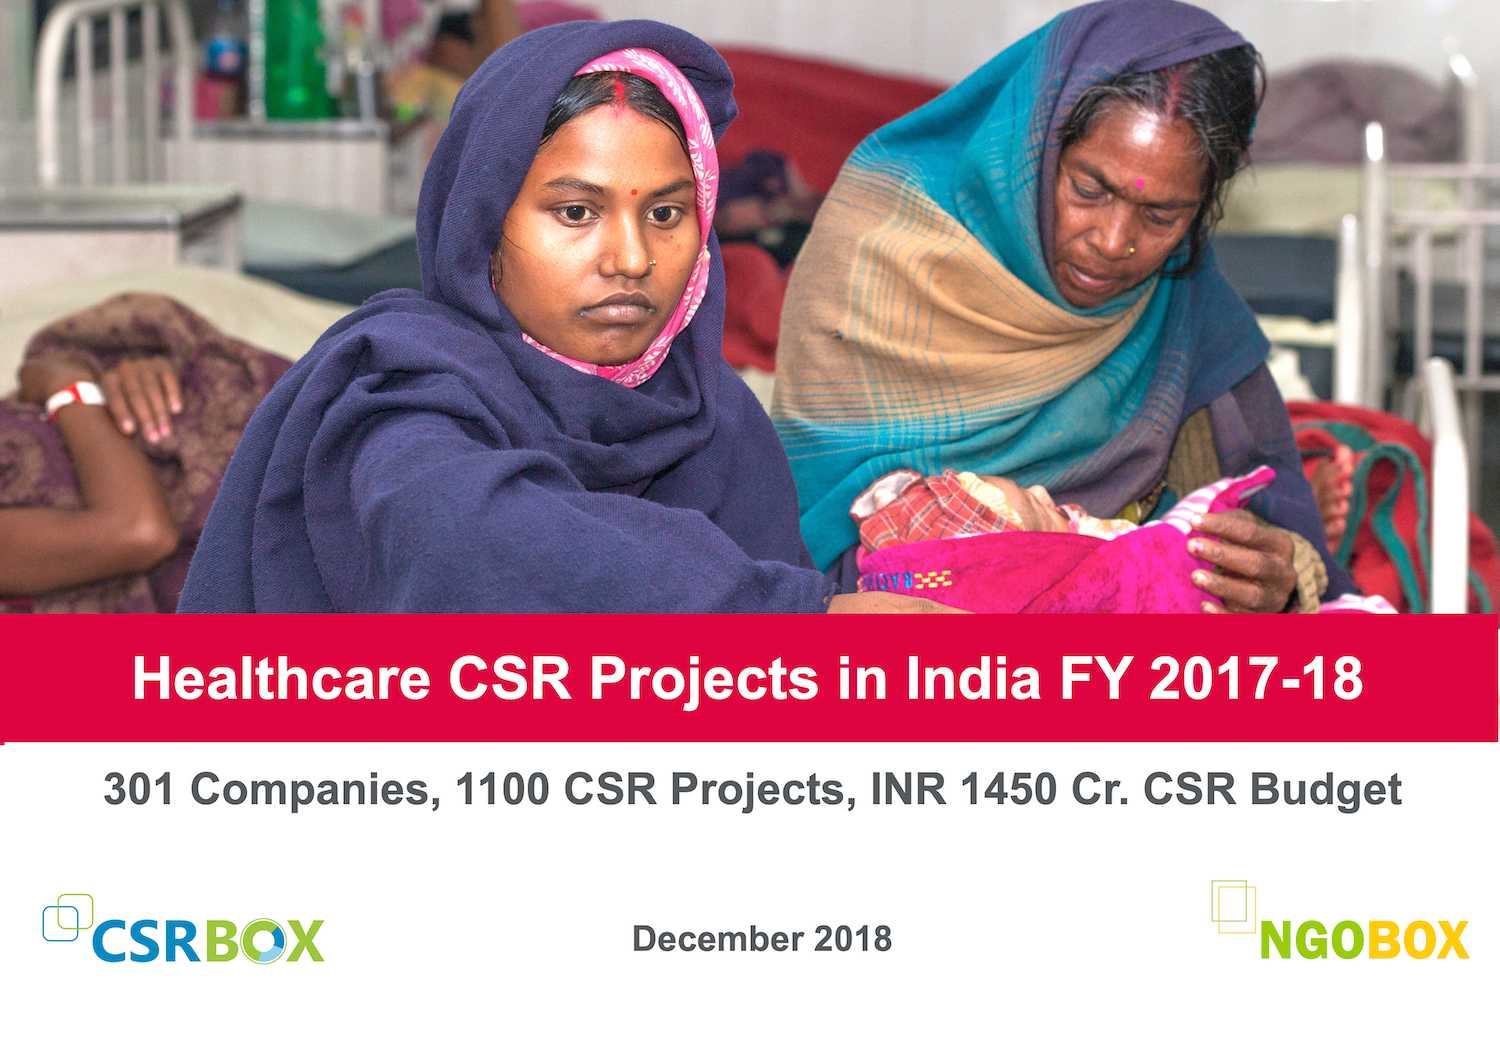 CSR Projects in Healthcare in India in FY2017-18